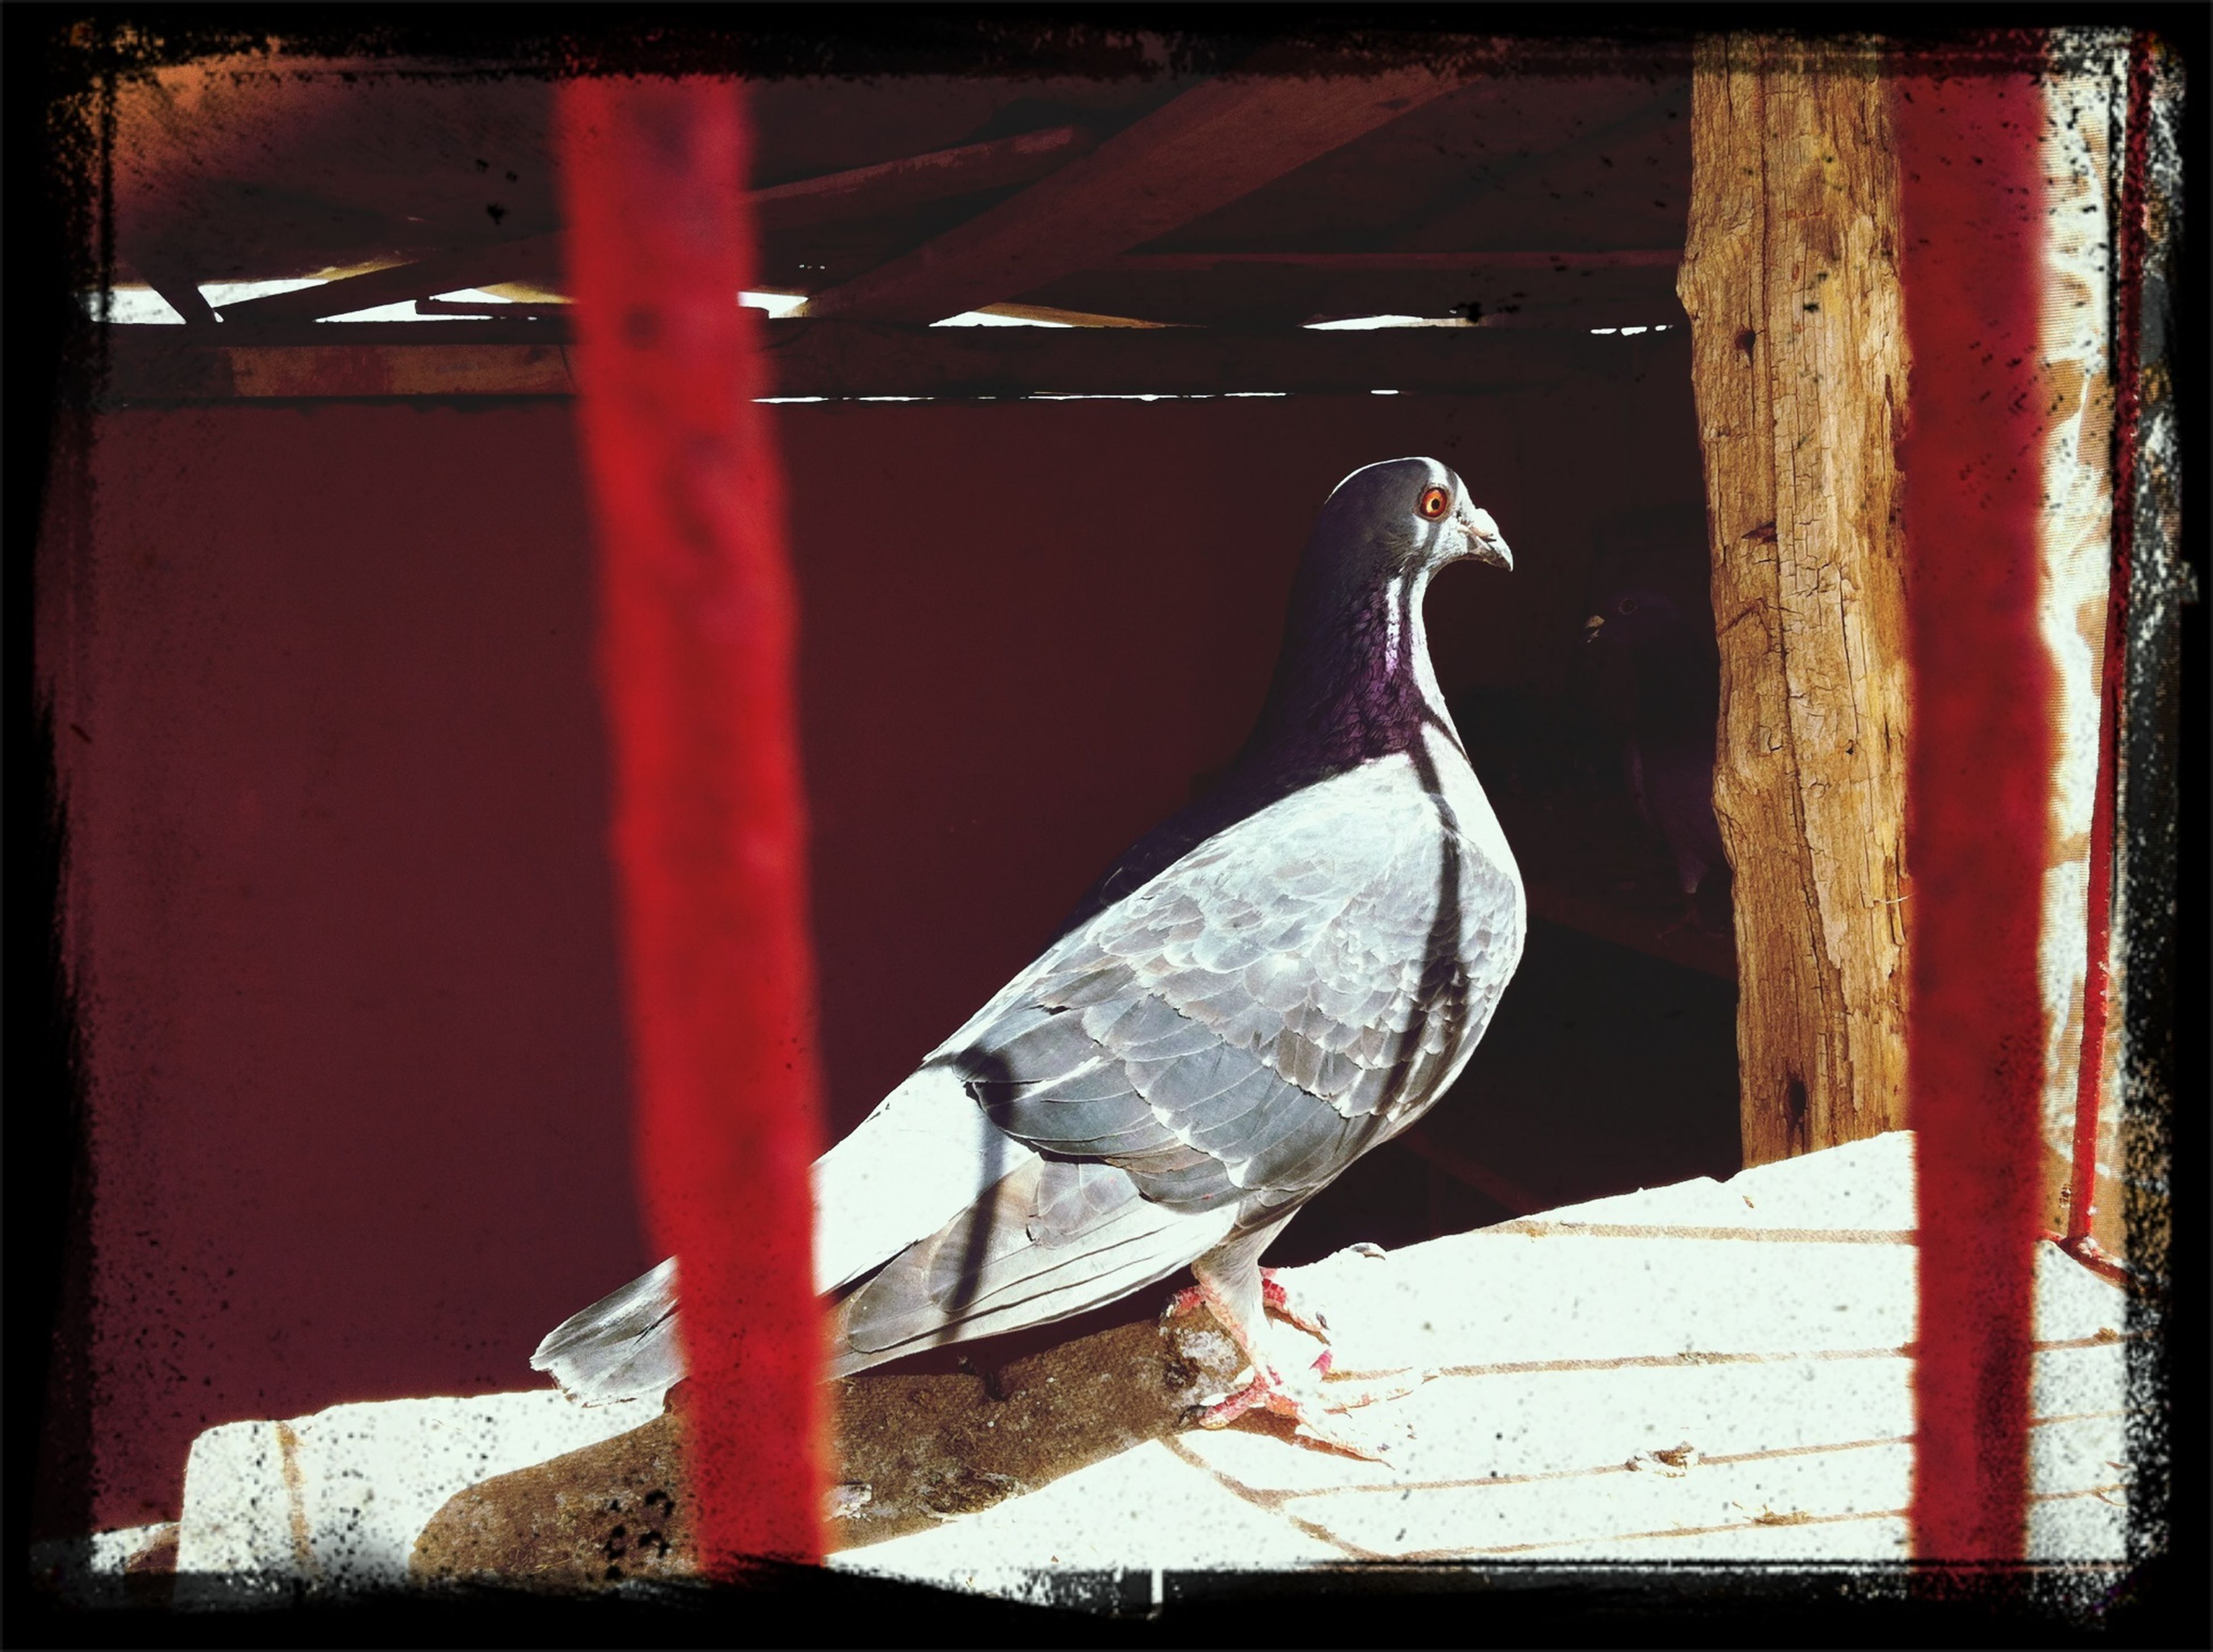 bird, animal themes, animals in the wild, wildlife, one animal, perching, transfer print, auto post production filter, pigeon, beak, close-up, full length, animals in captivity, focus on foreground, outdoors, no people, two animals, day, zoology, railing